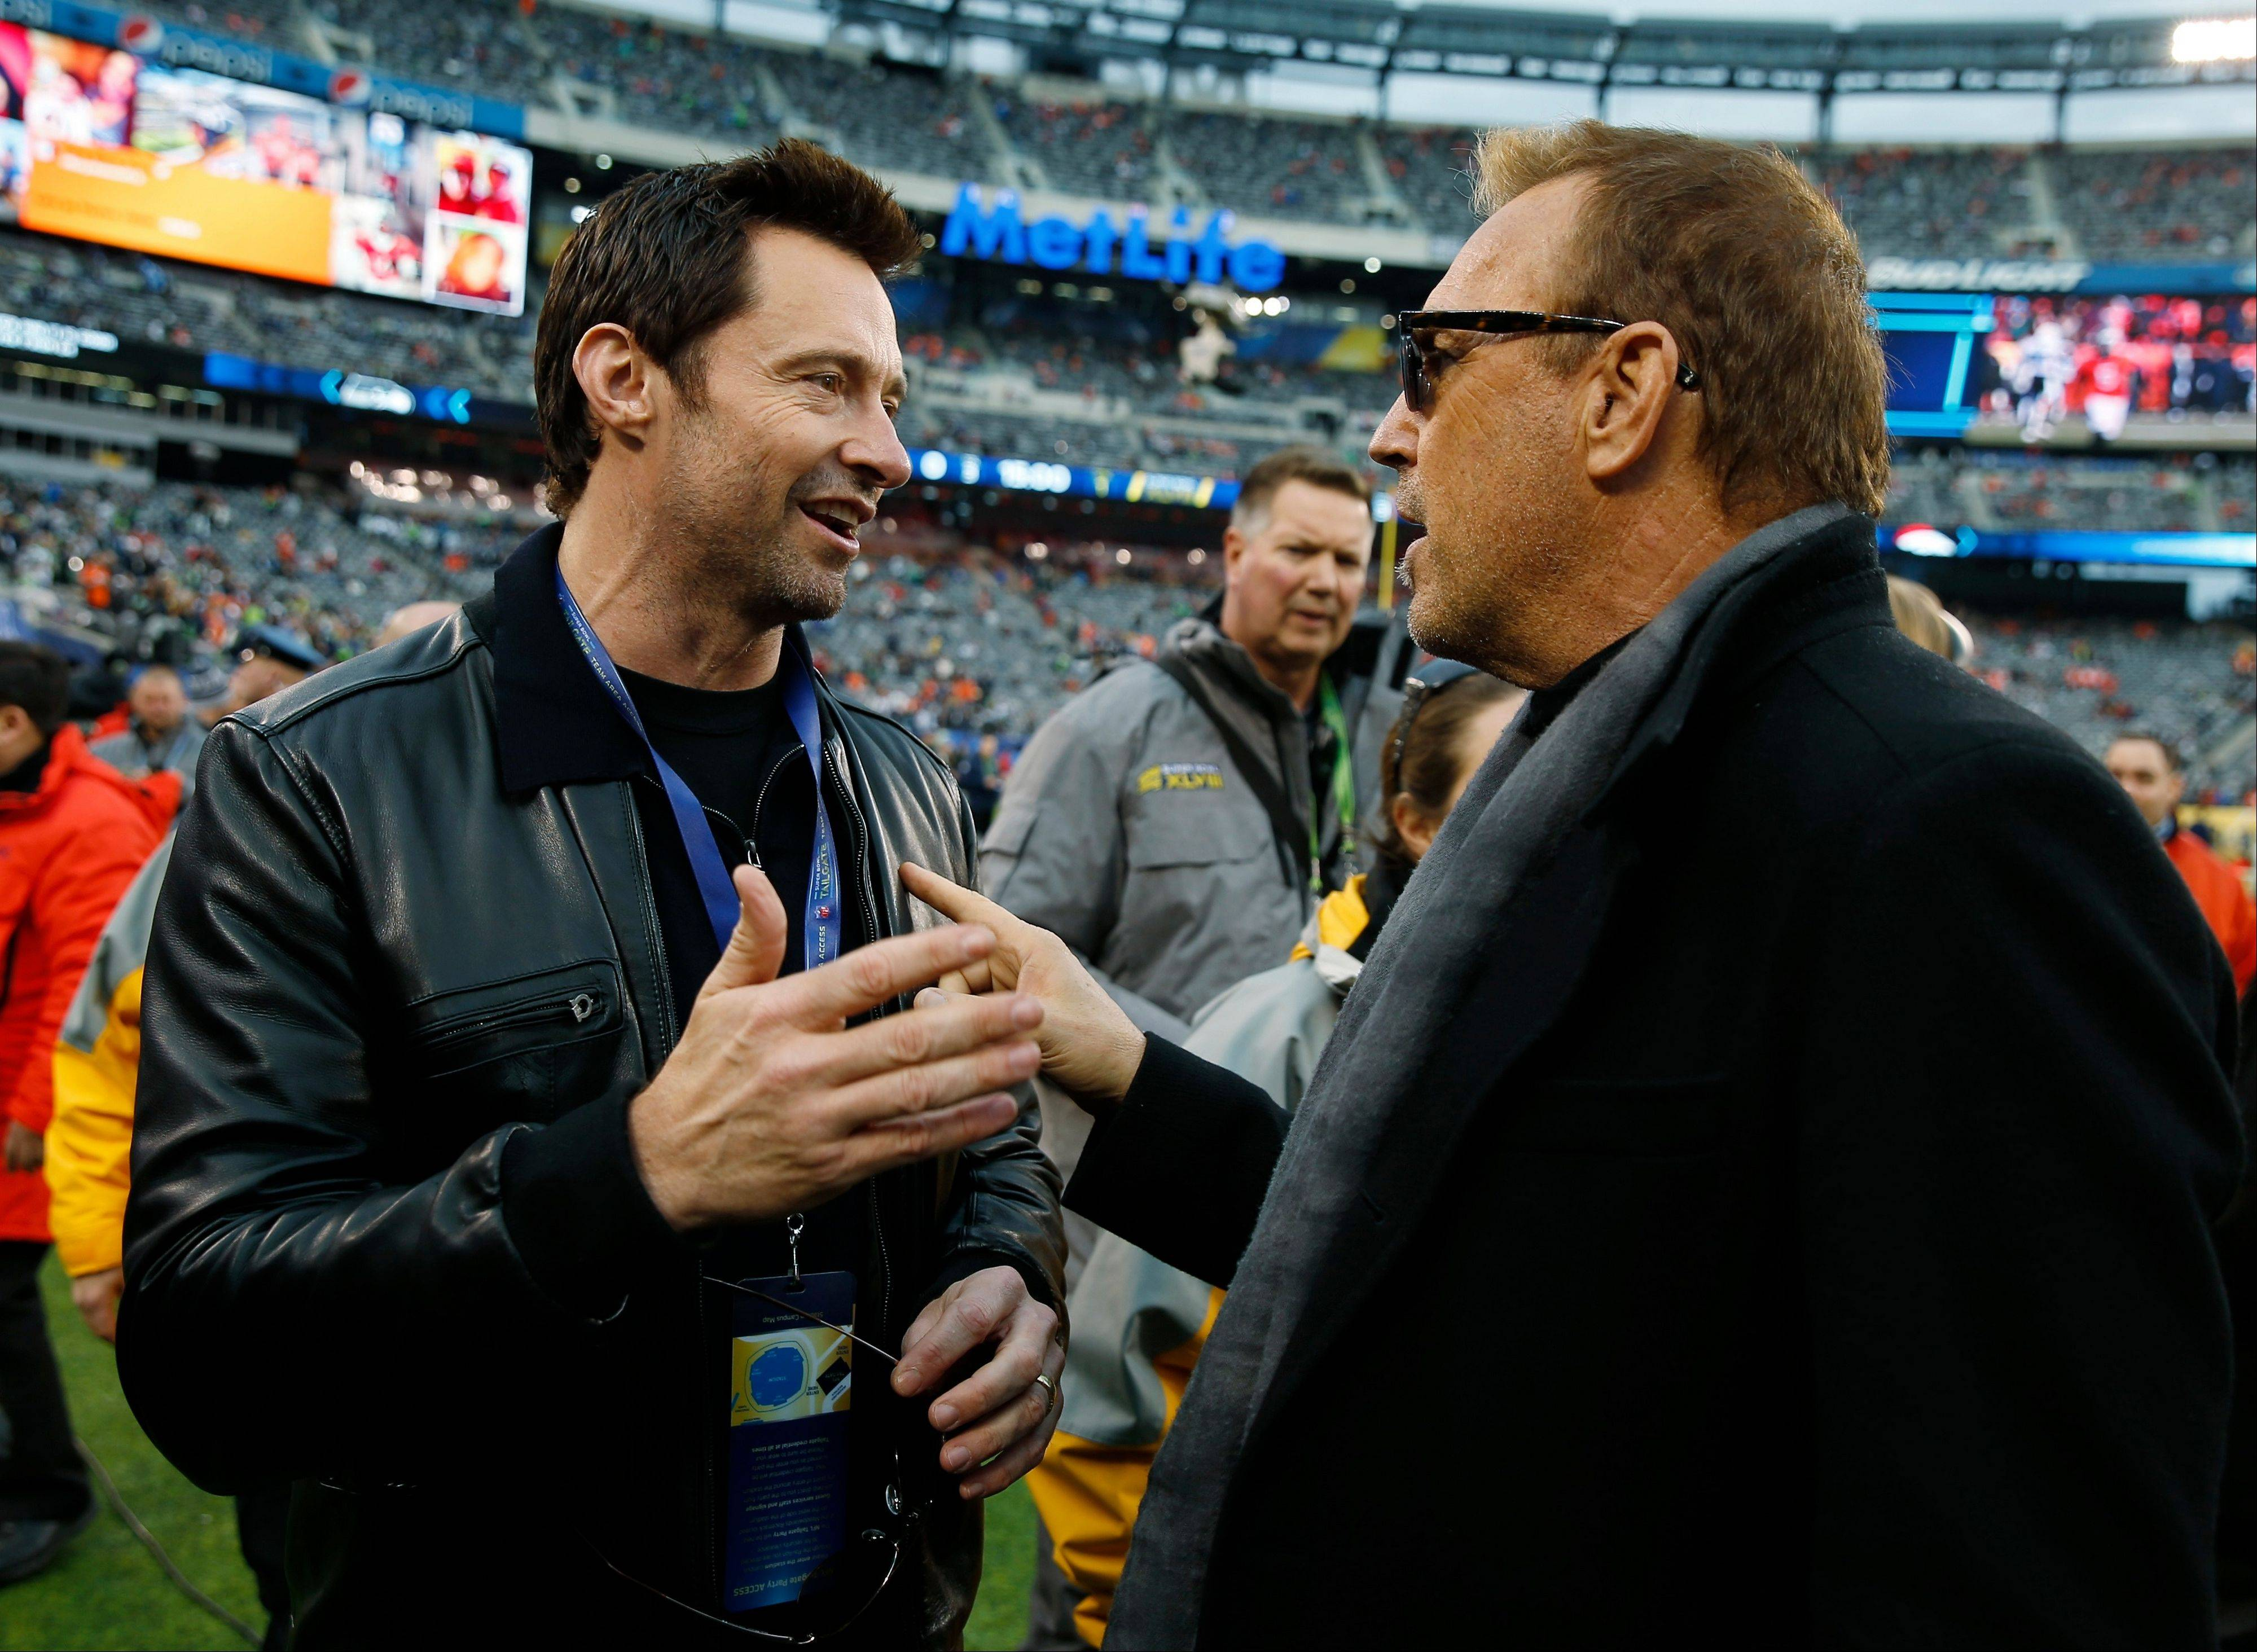 Actor Hugh Jackman, left, talks with fellow actor Kevin Costner, on the field before the NFL Super Bowl XLVIII football game.